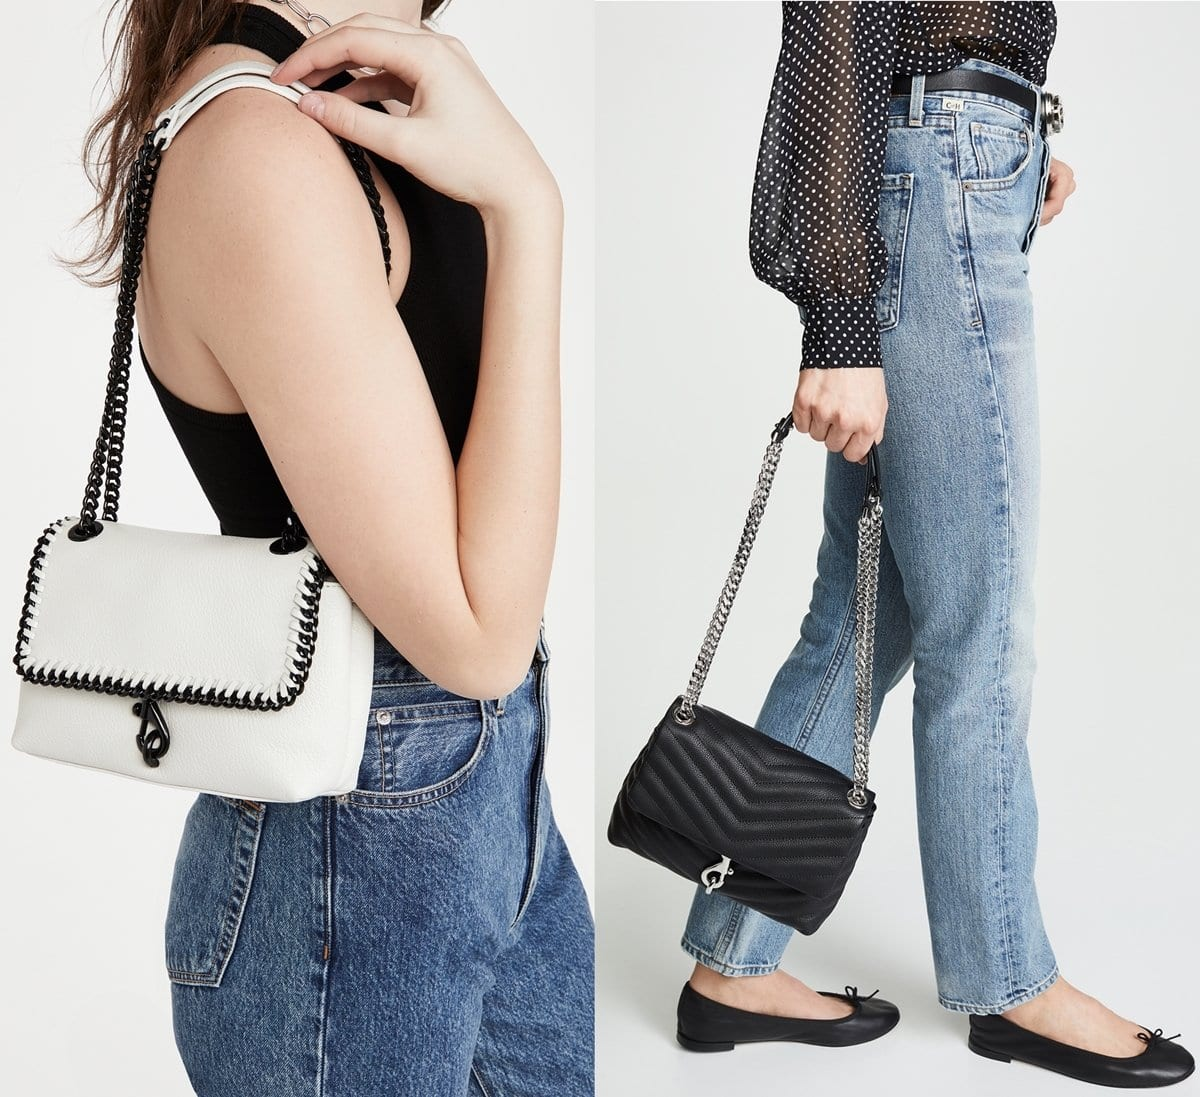 Rebecca Minkoff's understated Edie crossbody bag is the perfect way to accentuate everyday ensembles